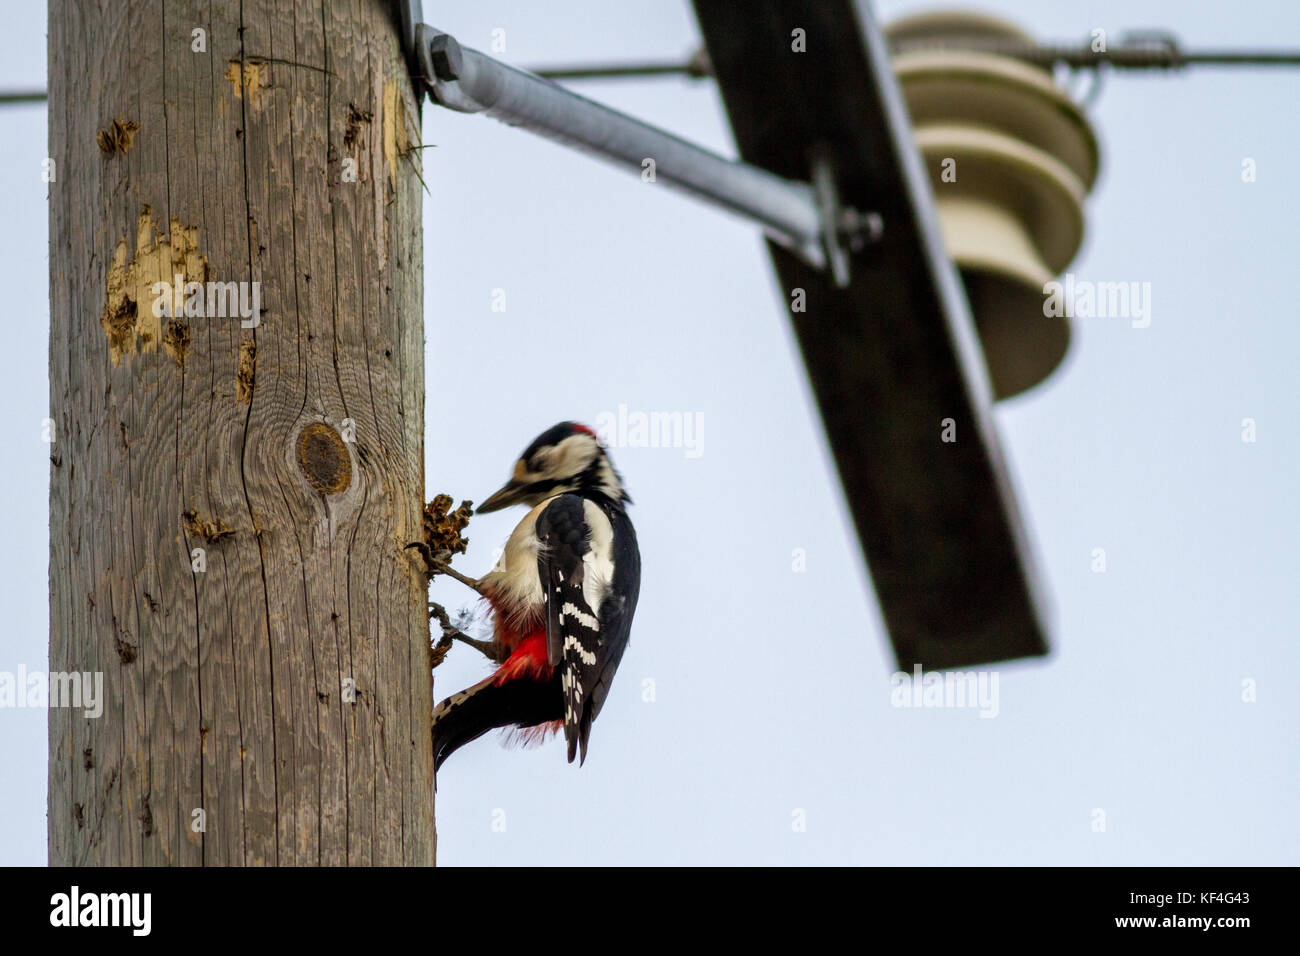 Finnish wildlife in action: great spotted woodpecker on a telegraph pole actively pecking a pine cone it has placed - Stock Image